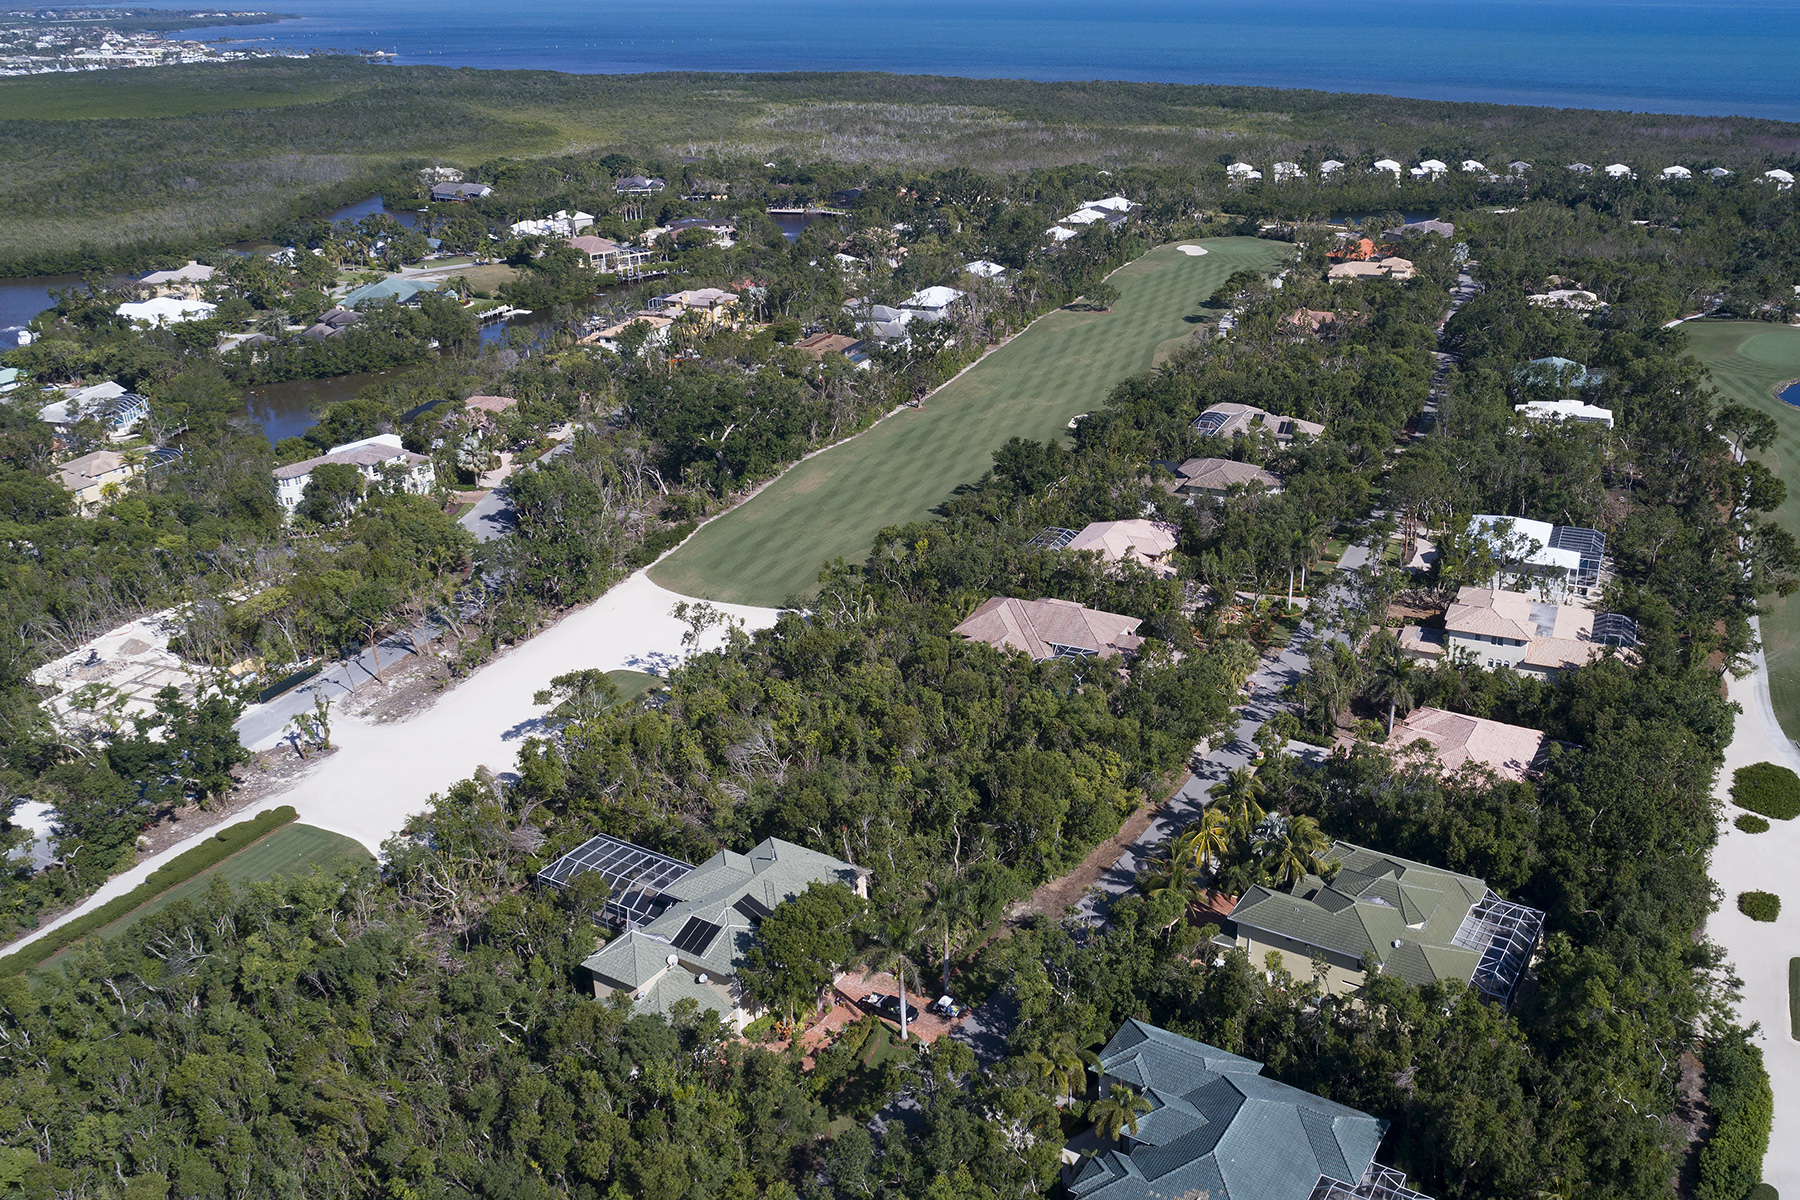 Moradia para Venda às Pre-Construction Golf Course Home at Ocean Reef 5 Cinnamon Bark Lane Key Largo, Florida 33037 Estados Unidos